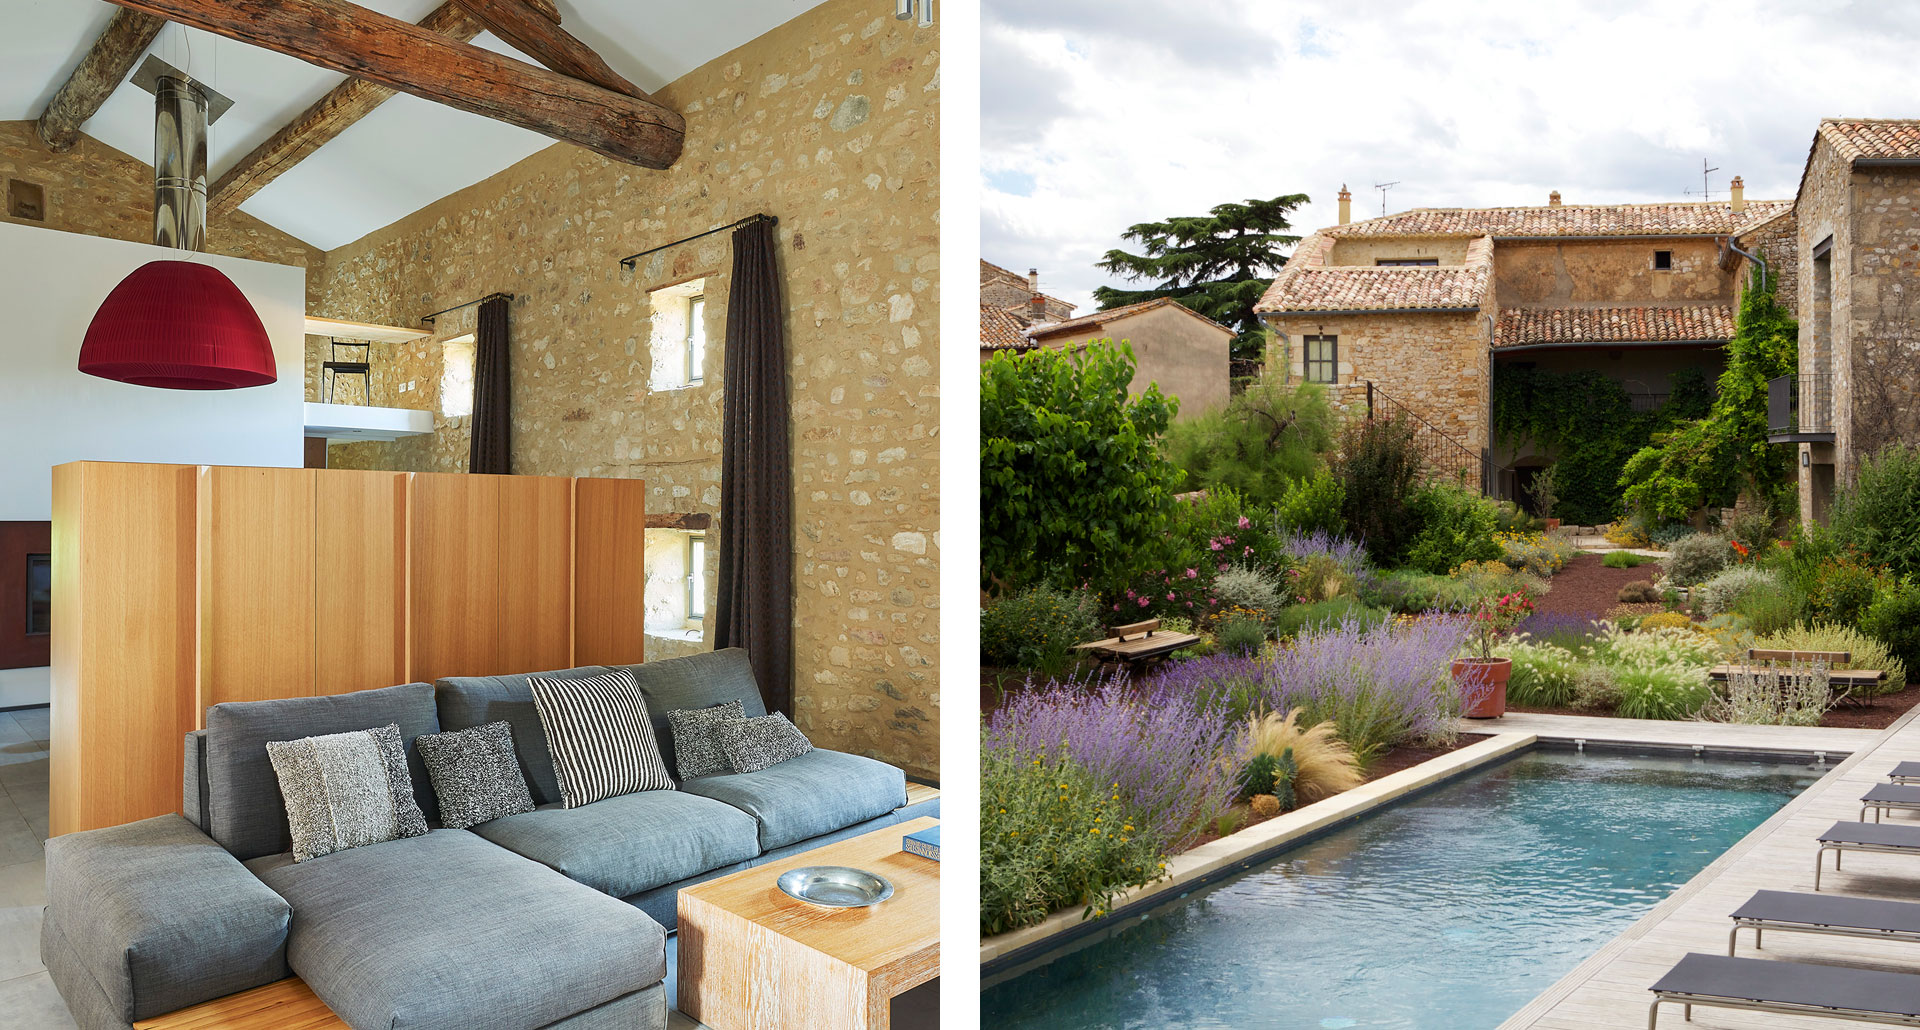 LA MAISON D'ULYSSE - farmhouse boutique hotel in Baron, France